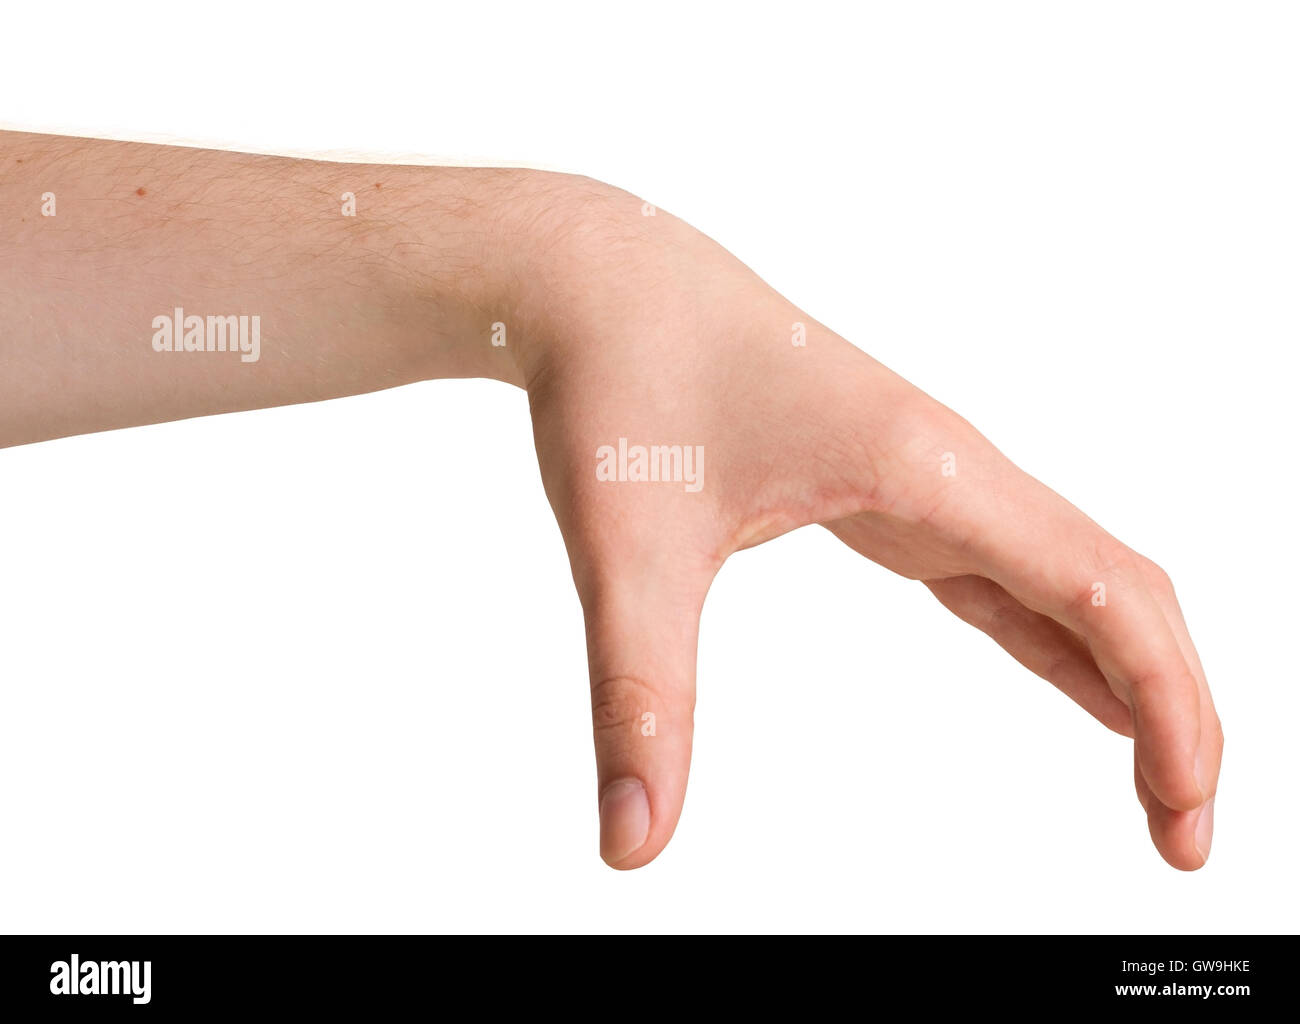 Isolated Male Hand in a Position - Stock Image